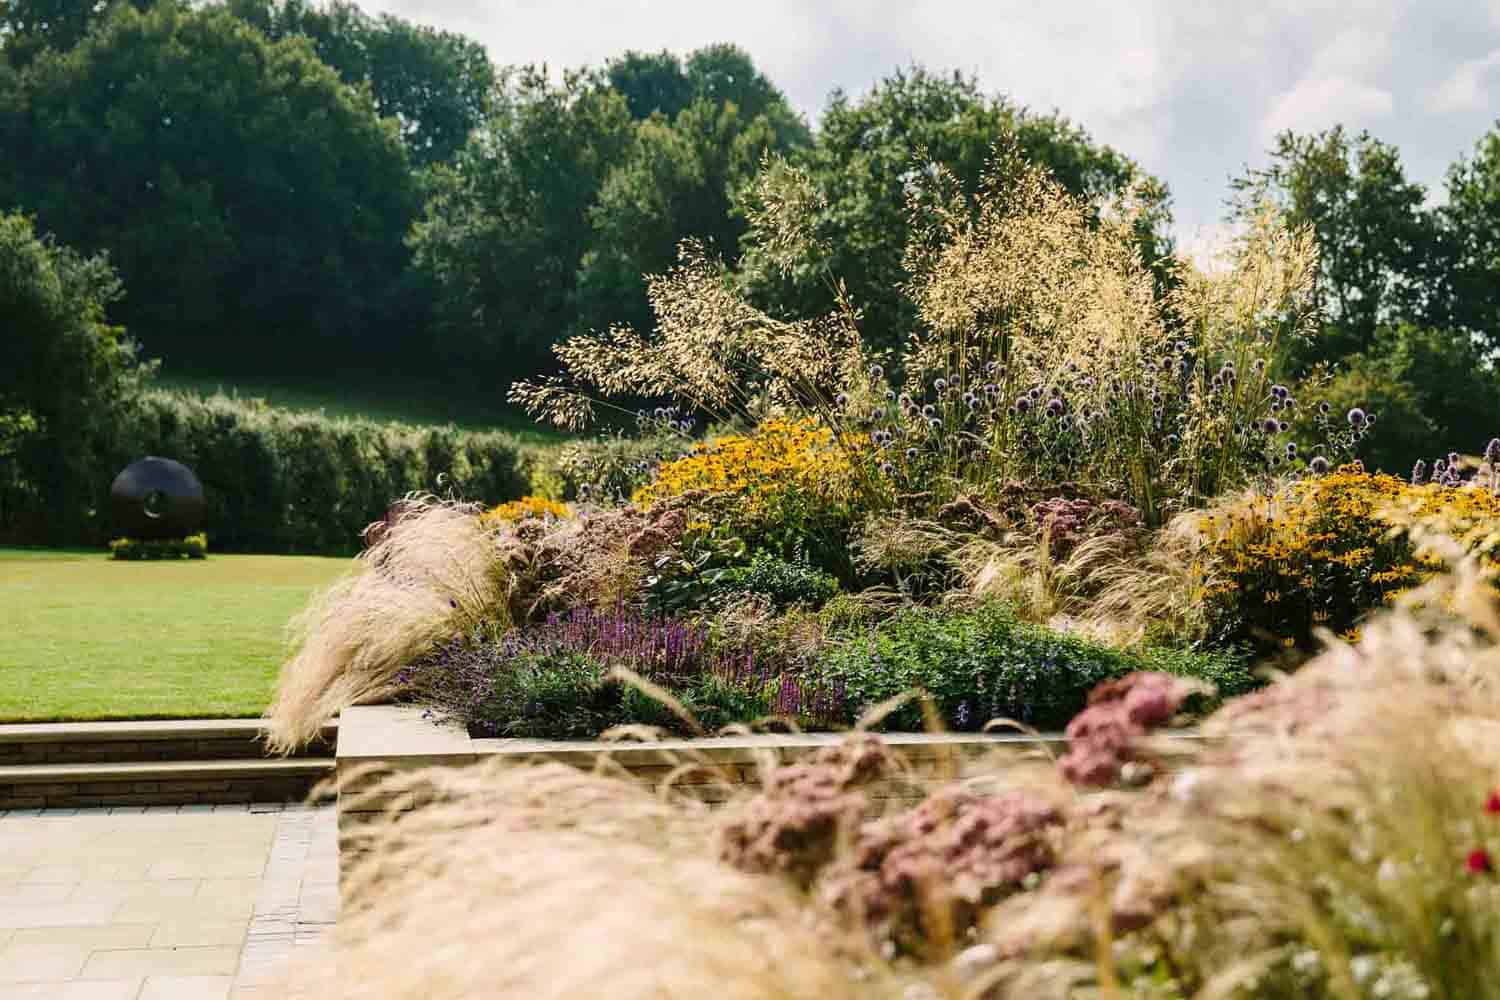 Country Garden-bestall-and-co-yorkshire-modern-planting-dutch-planting Terraced Garden bestall and co Beautiful Planting Planting Design Dry Stone Wall English country classic garden Kat Weatherill